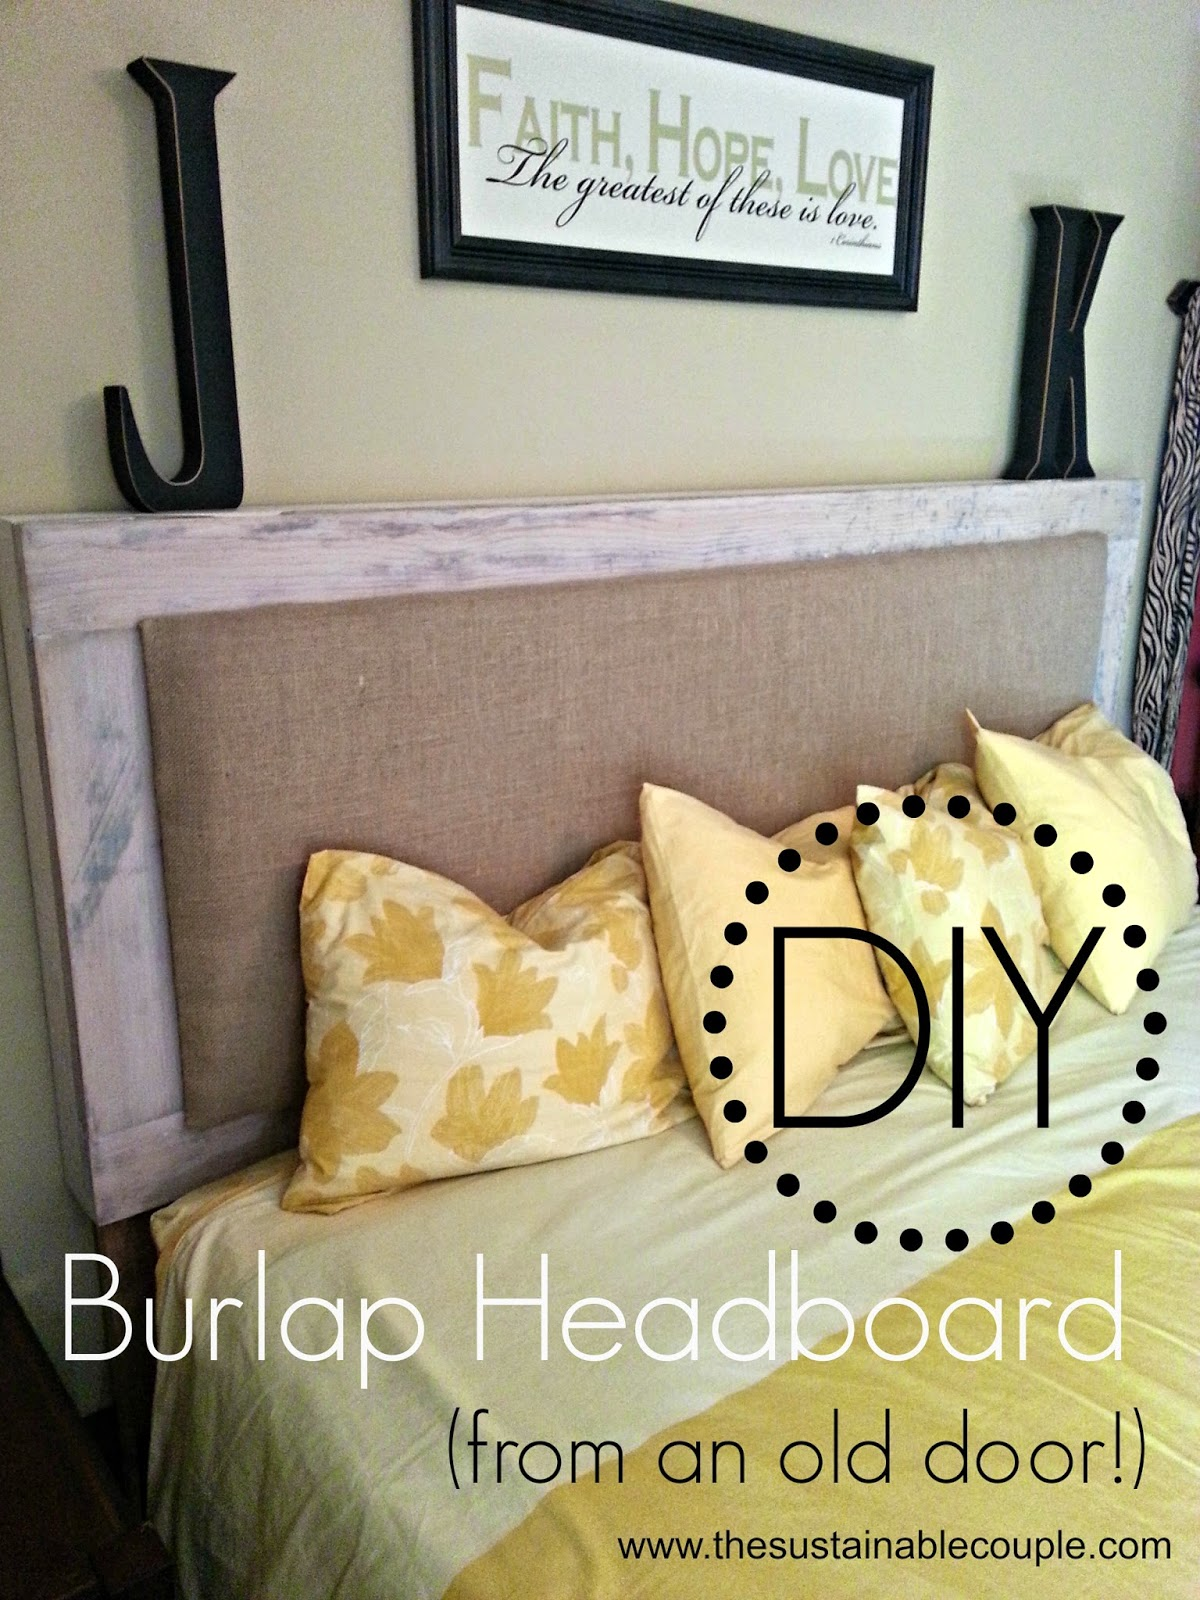 The Sustainable Couple Diy Padded Burlap Headboard From An Old Door